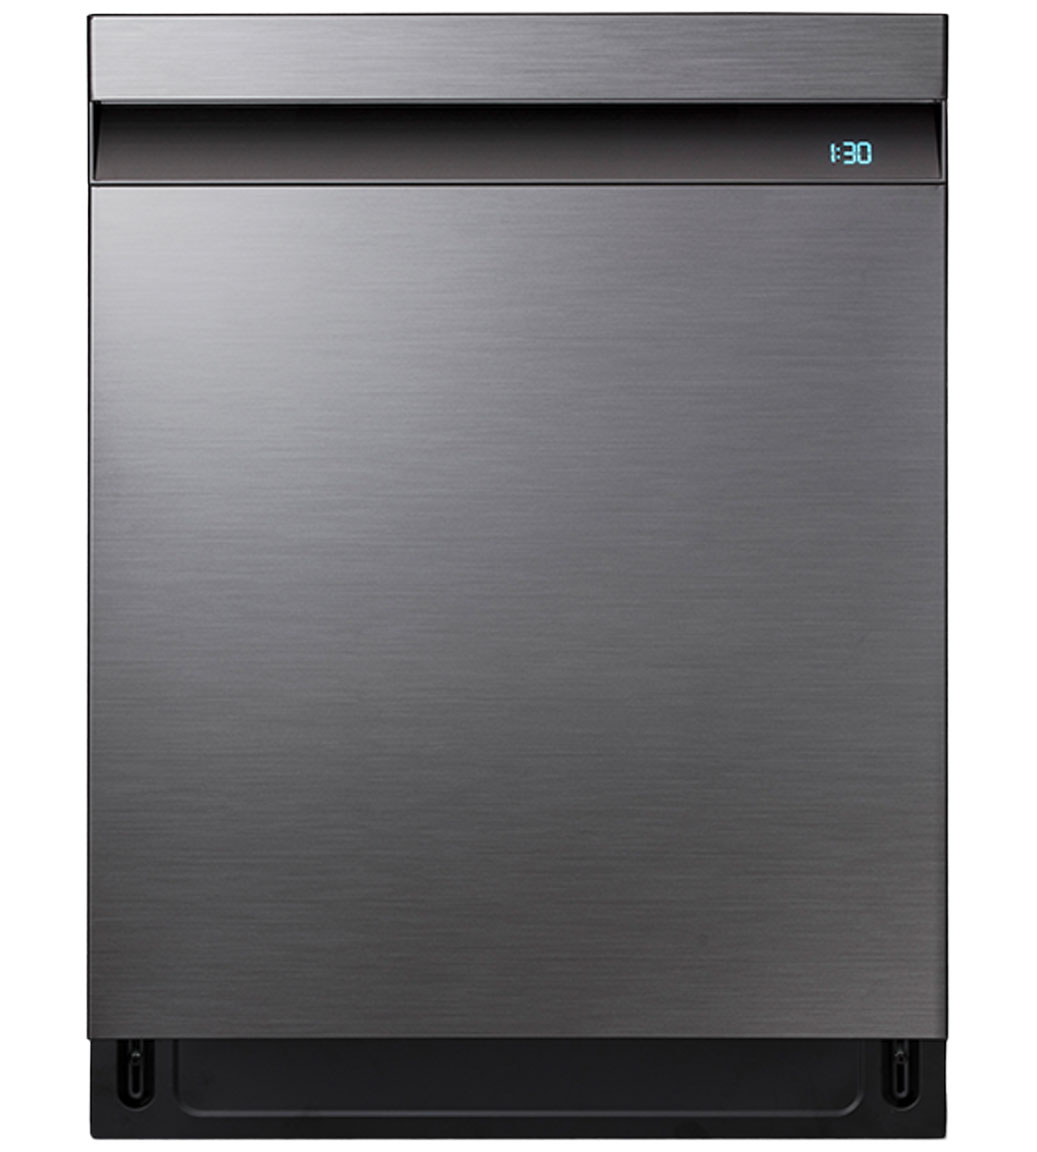 Samsung Dishwasher 24 DW80R9950U in Black Stainless Steel color showcased by Corbeil Electro Store